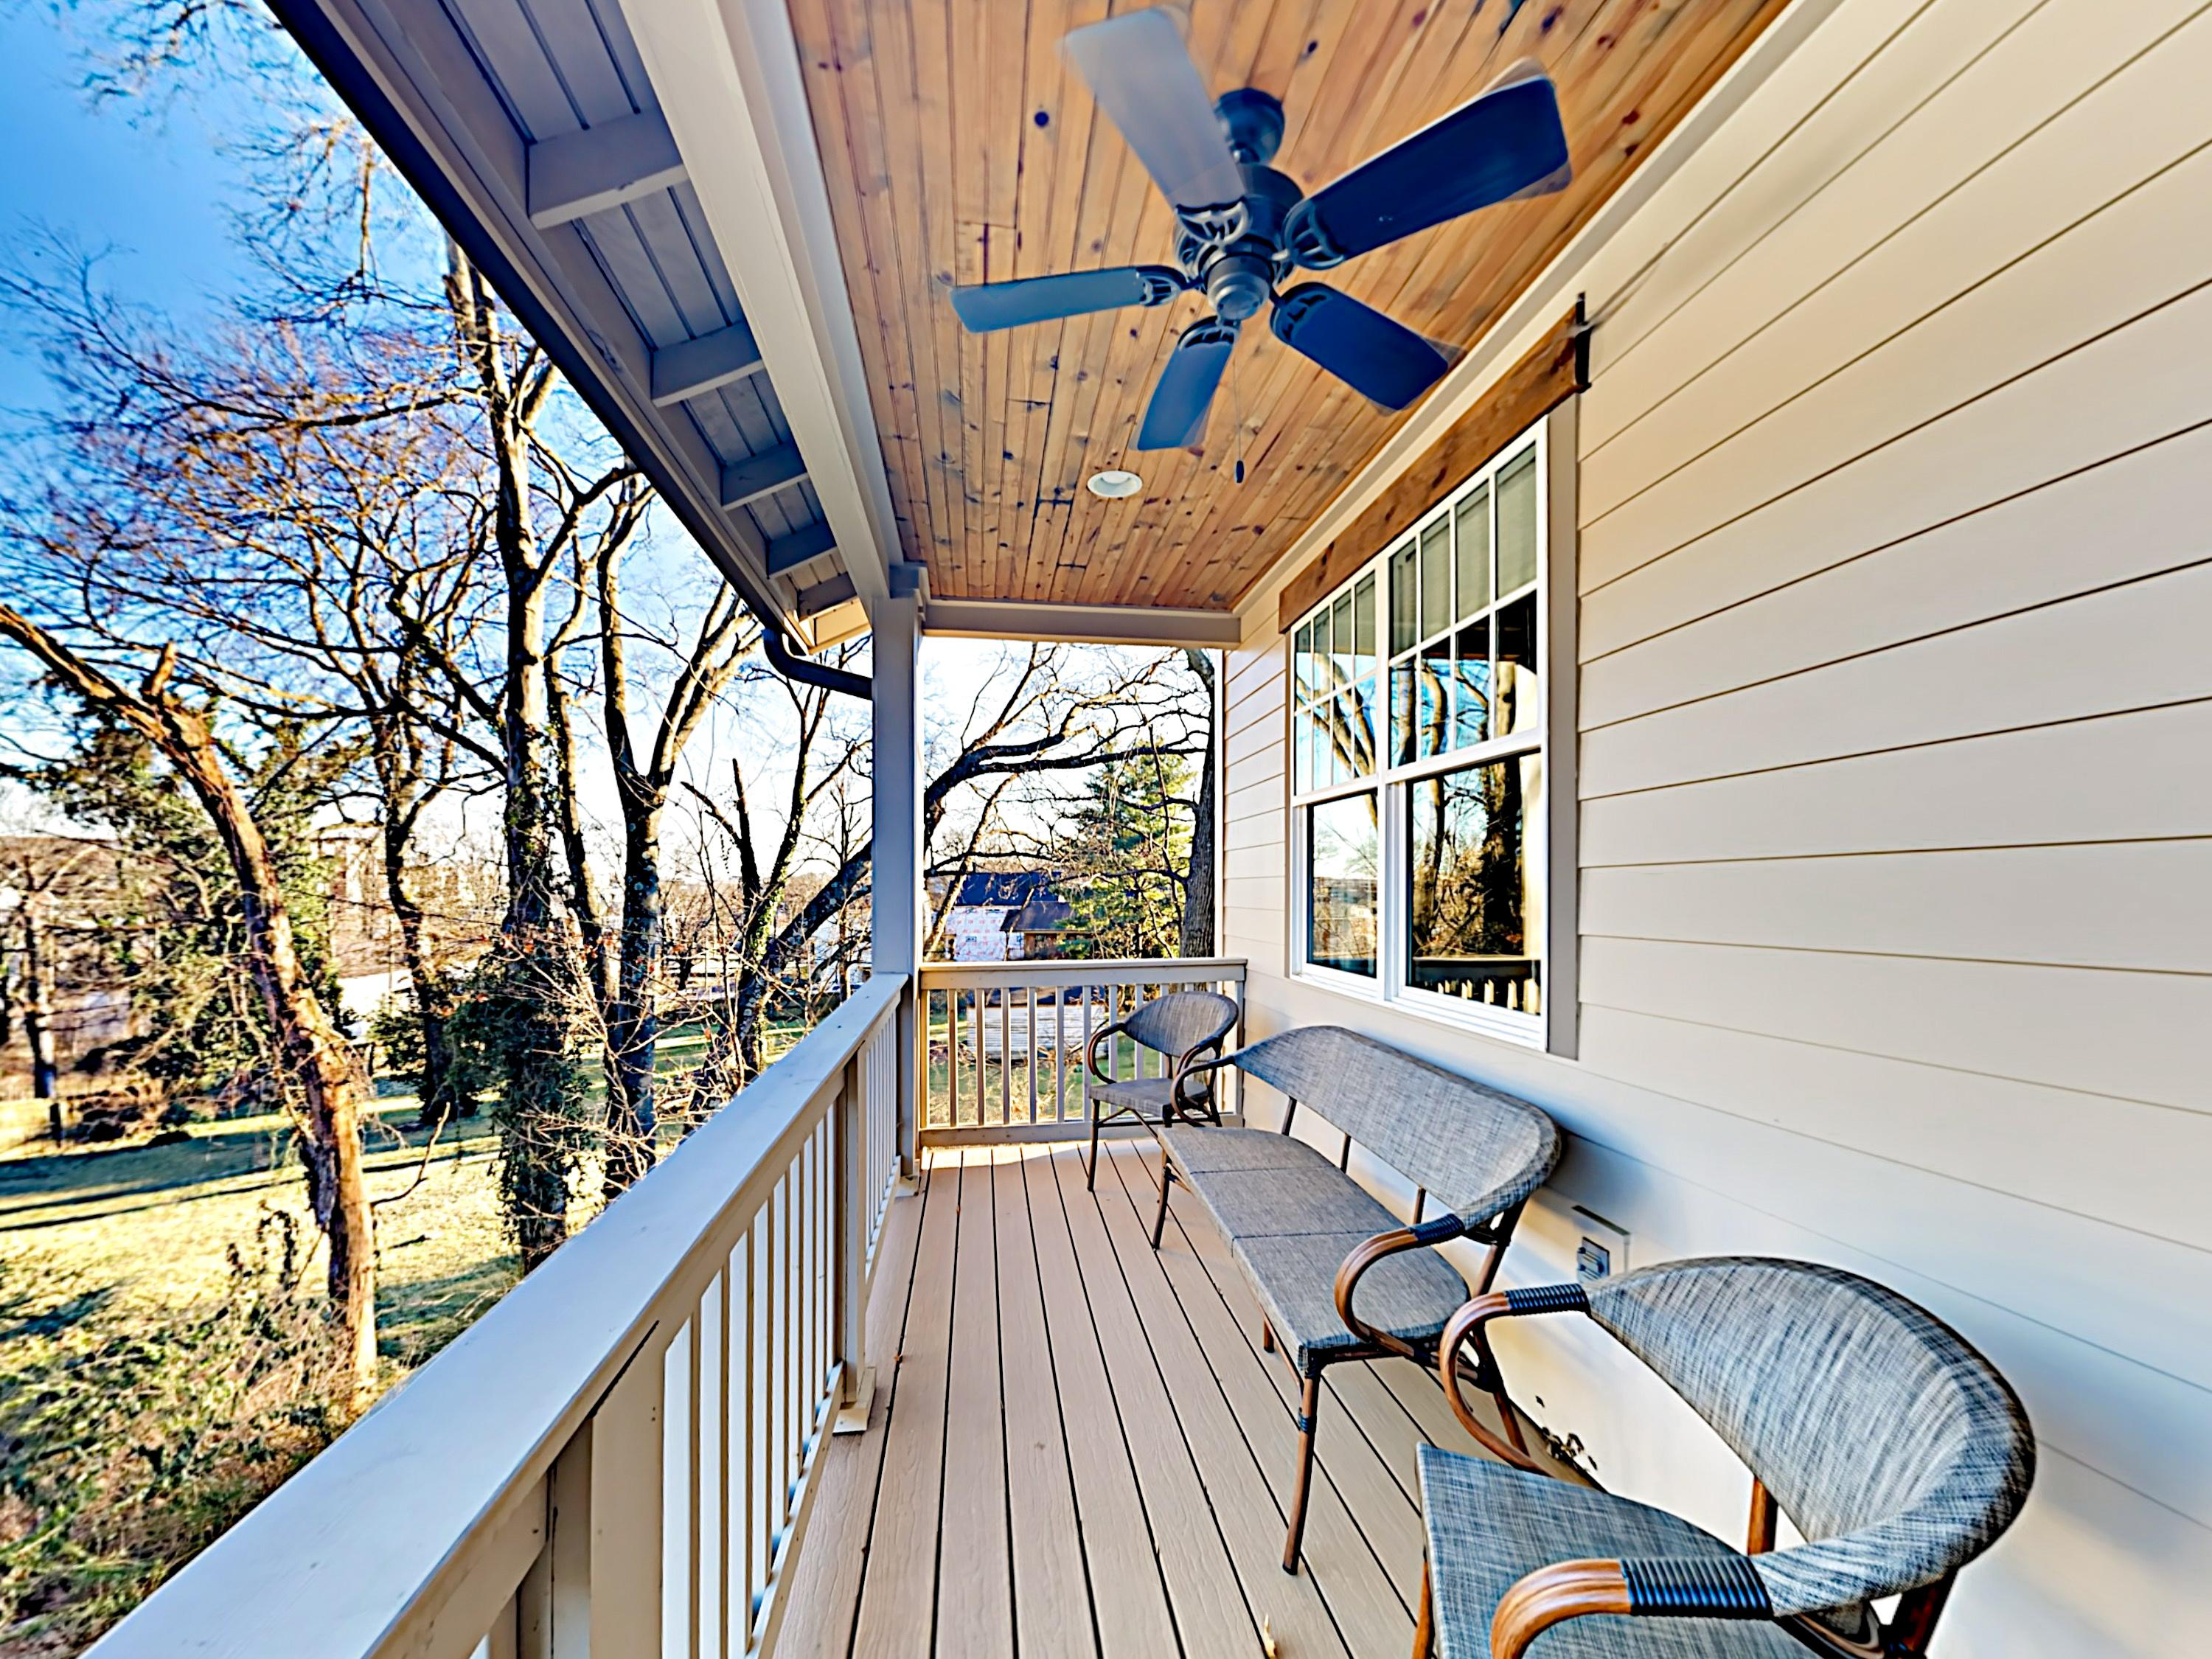 Stylish Nashville Home with Deck and Porch